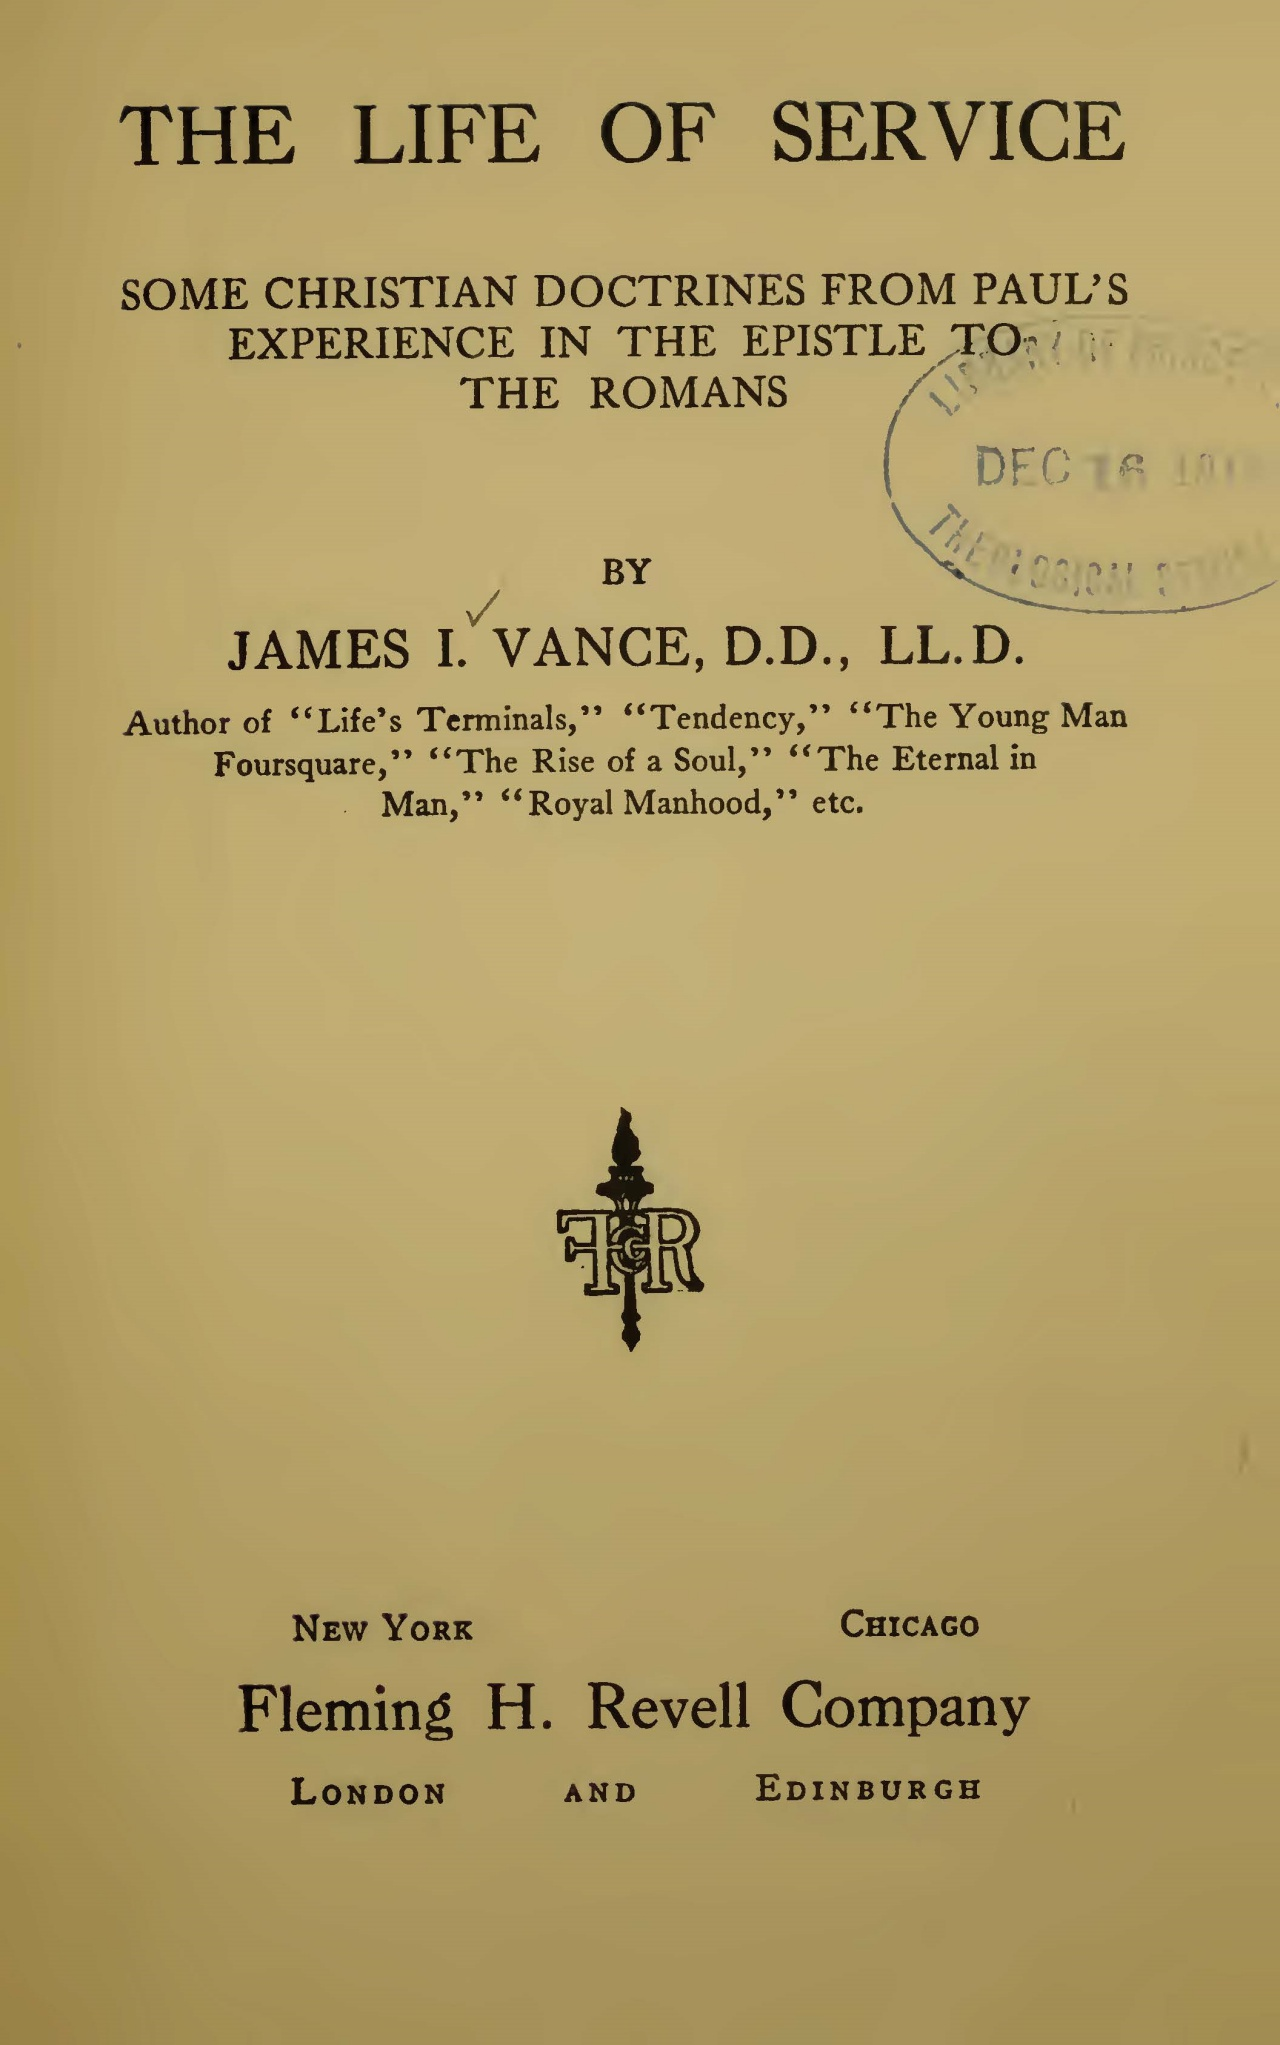 Vance, James Isaac, The Life of Service Title Page.jpg